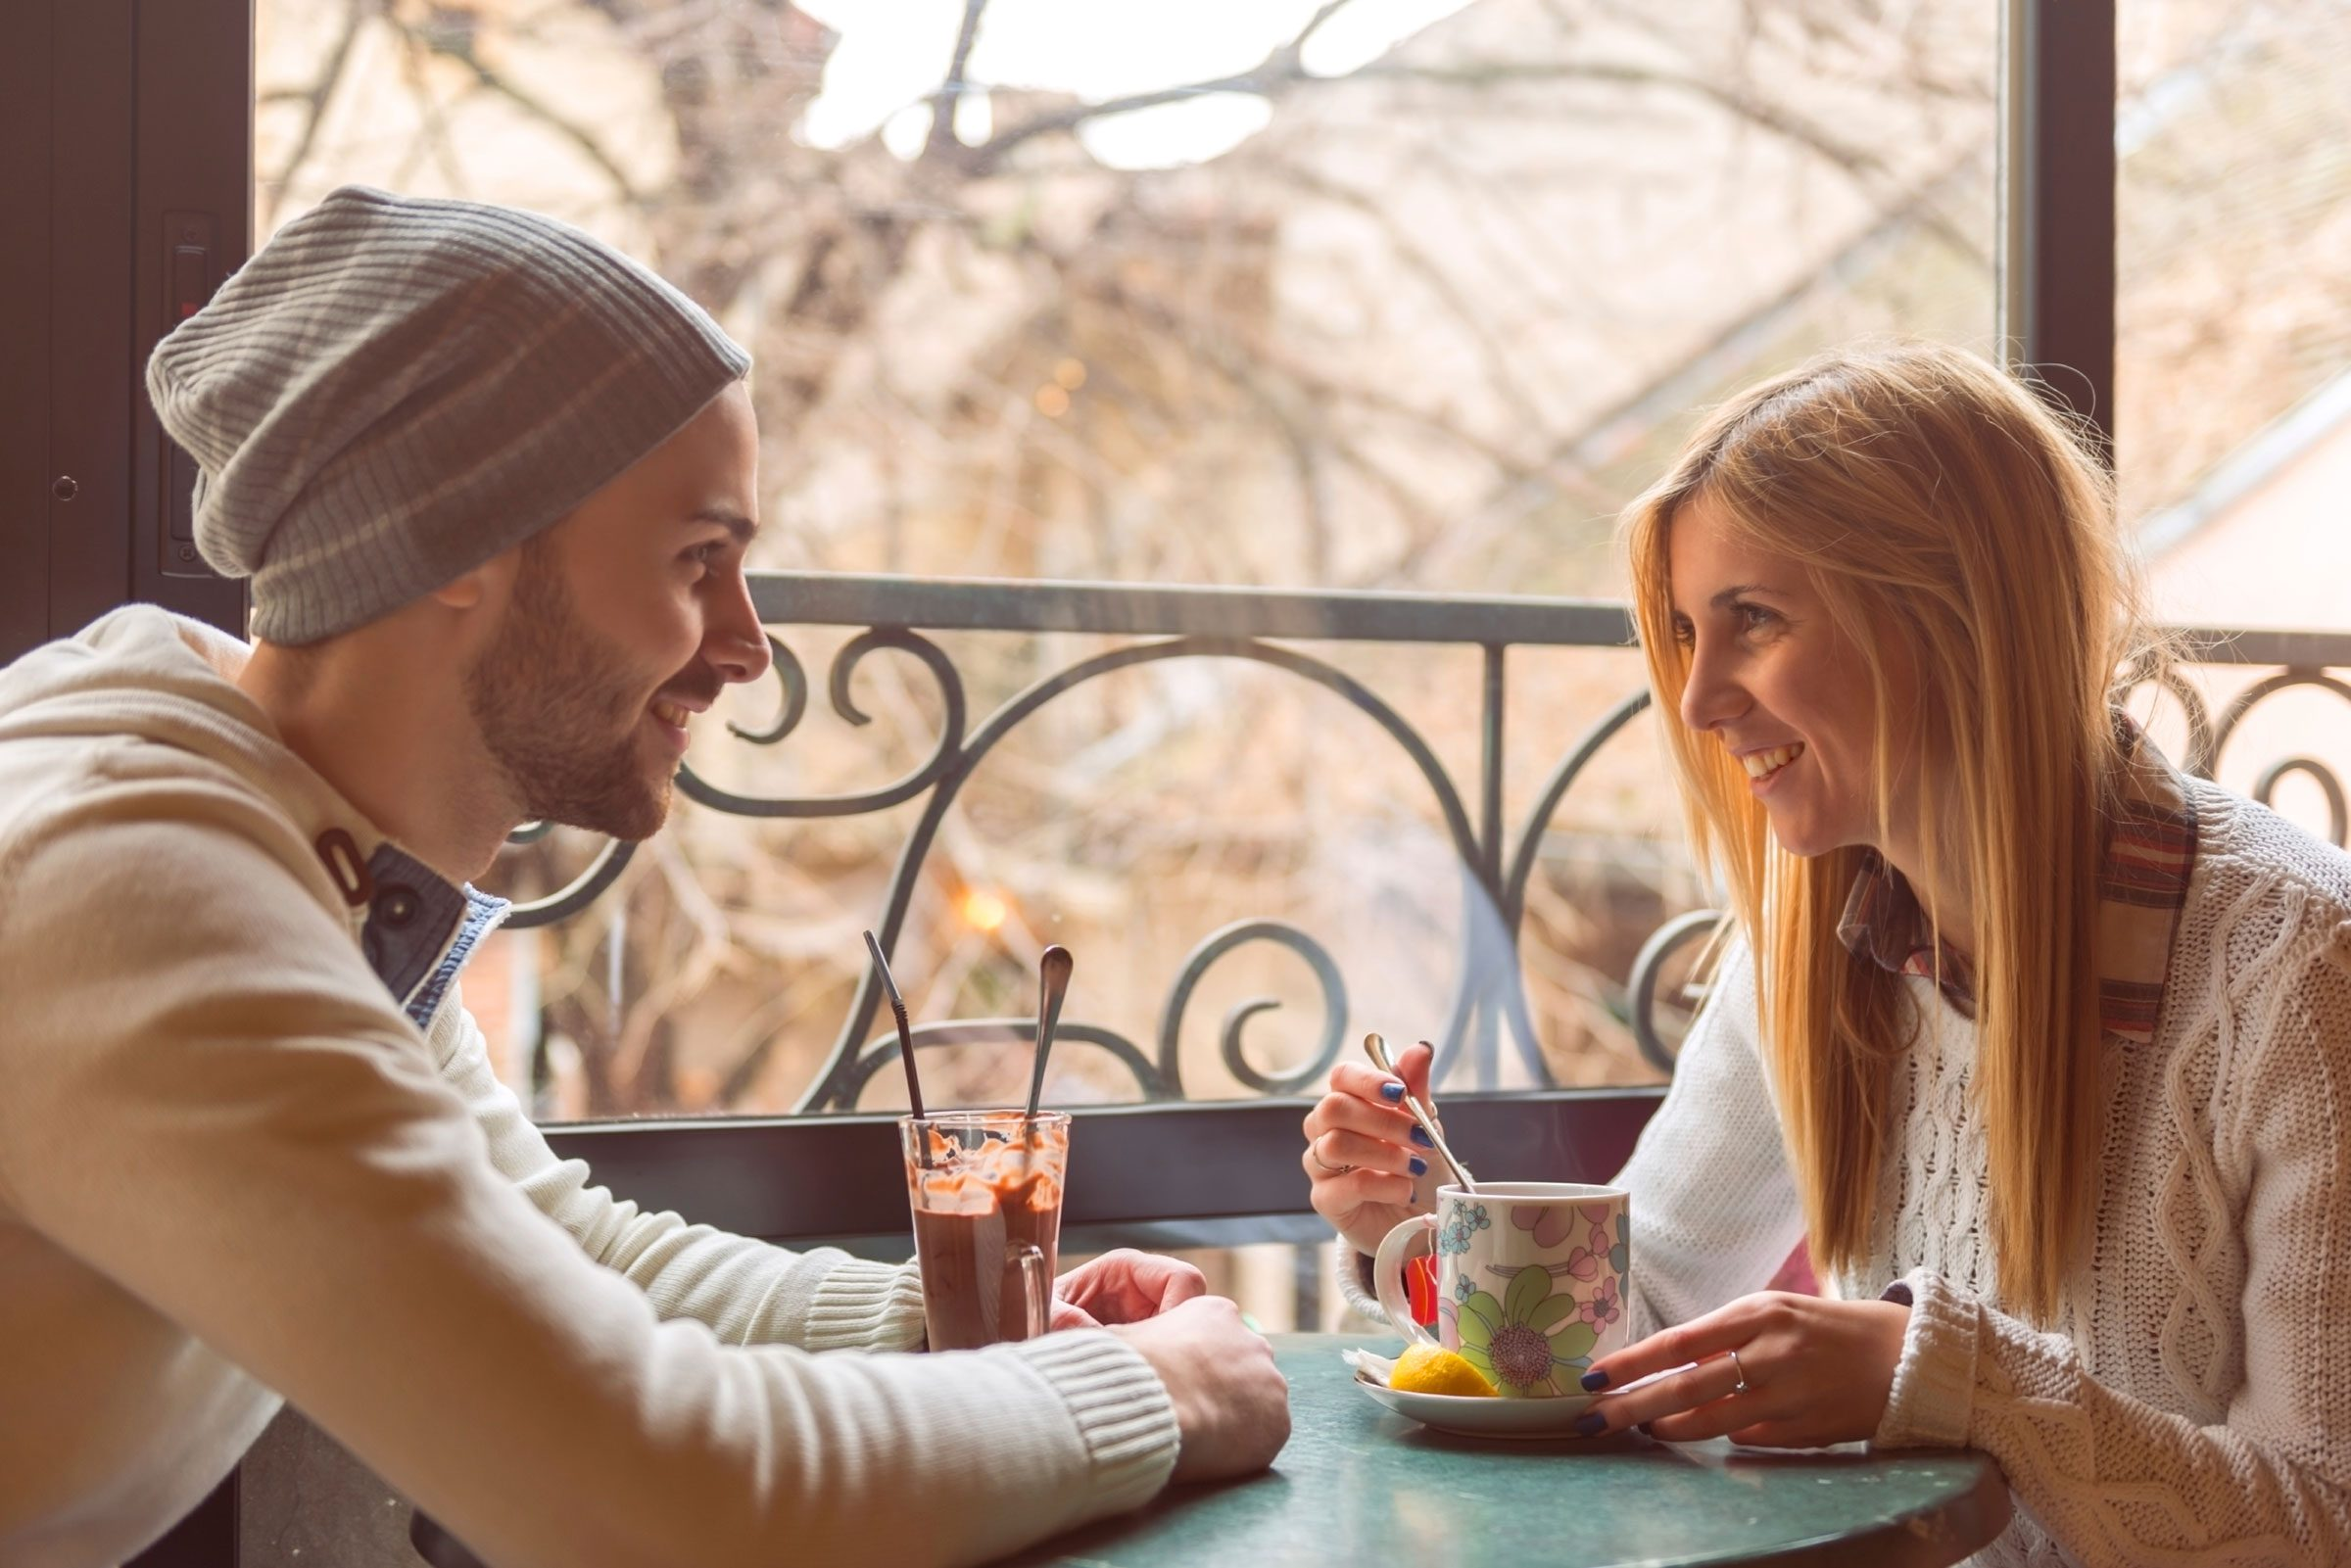 Ask Waitress Out Date Secrets Your Waiter Wont Tell You First Date